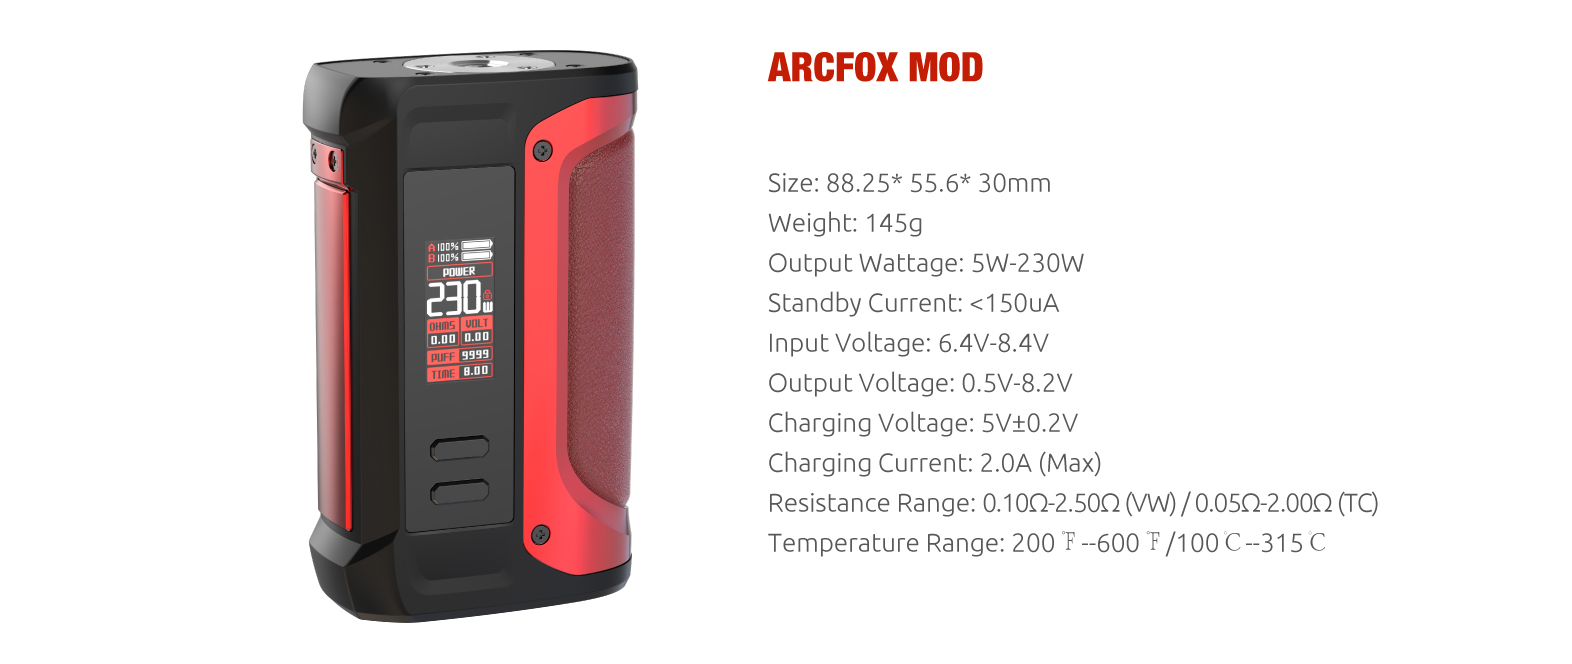 A black and red SMOK vape mod with specs listed to the right.